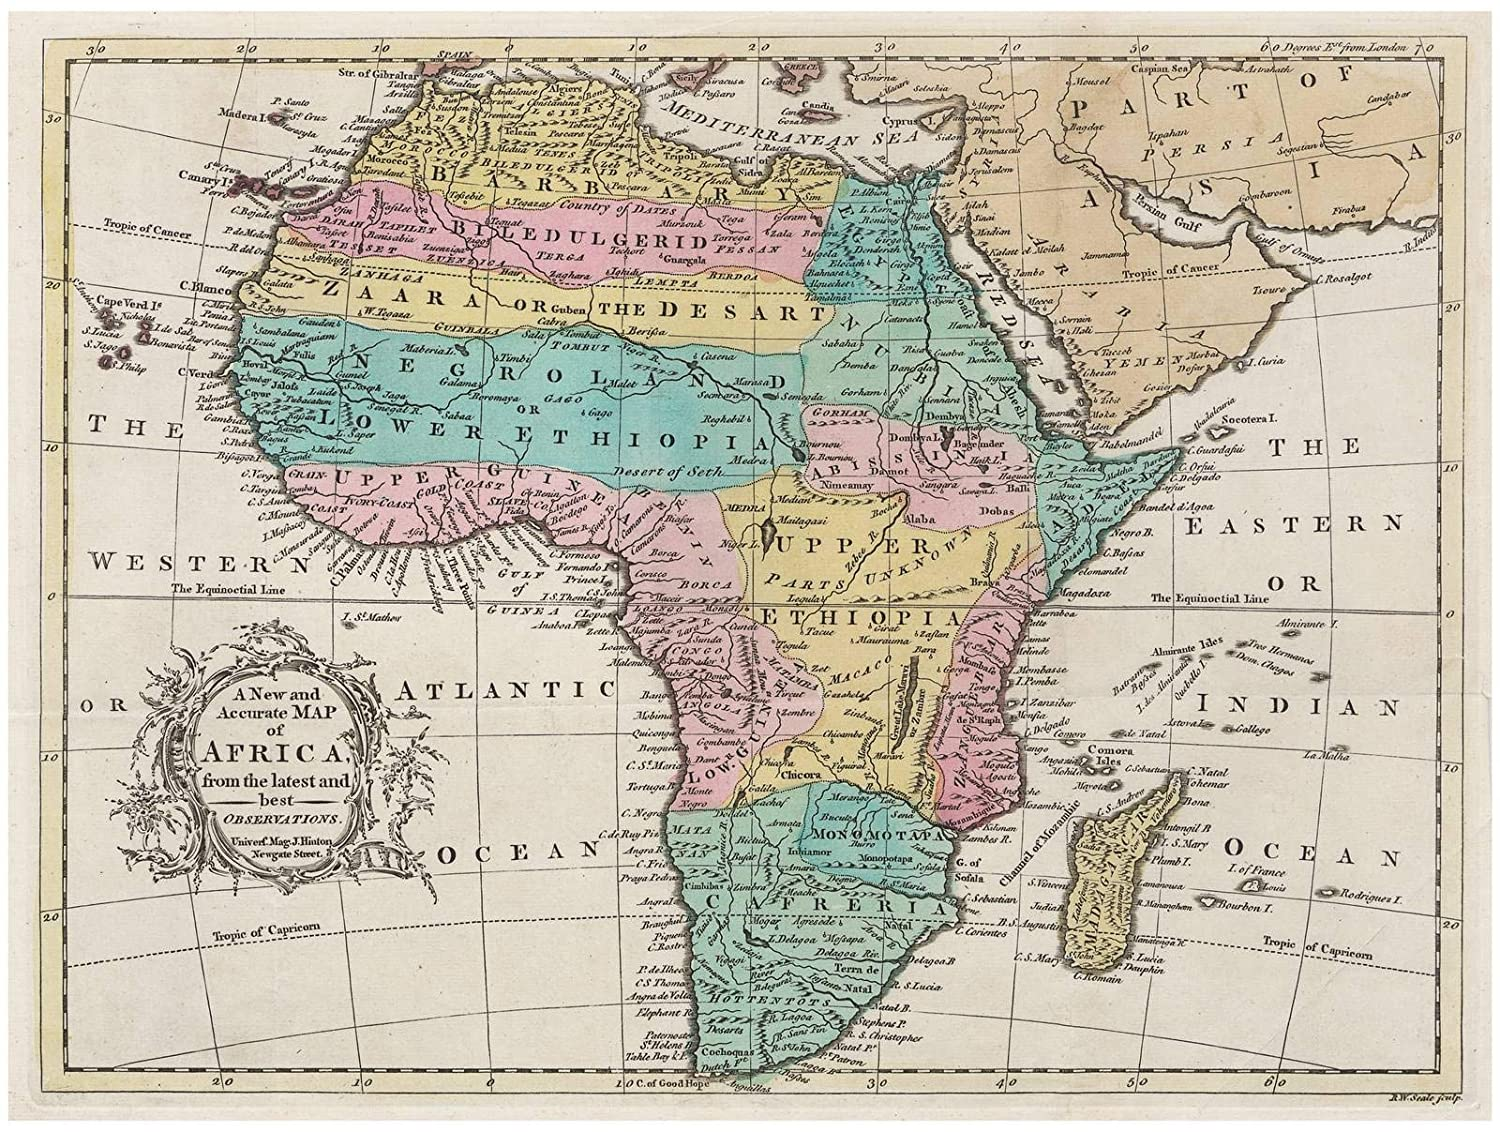 Historic 1747 Map - A New and Accurate map of Africa, from The Latest on map of georgia, map of virginia, map of florida, map of iraq, map of ethiopia, map of us, map of zimbabwe, map of tunisia, map of yemen, map of michigan, map of iran, map of california, map of sudan, map of ohio, map of continents, map of uganda, map of mali, map of antarctica, map of usa, map of europe, map of tanzania, map of germany, map of the world, map of north carolina, map of the united states, map of texas, map of ghana, map of mediterranean, map of indonesia, map of italy, map of libya, map of mexico, map of saudi arabia, map of world, map of morocco, map of canada, map of south america, map of middle east, map of china,